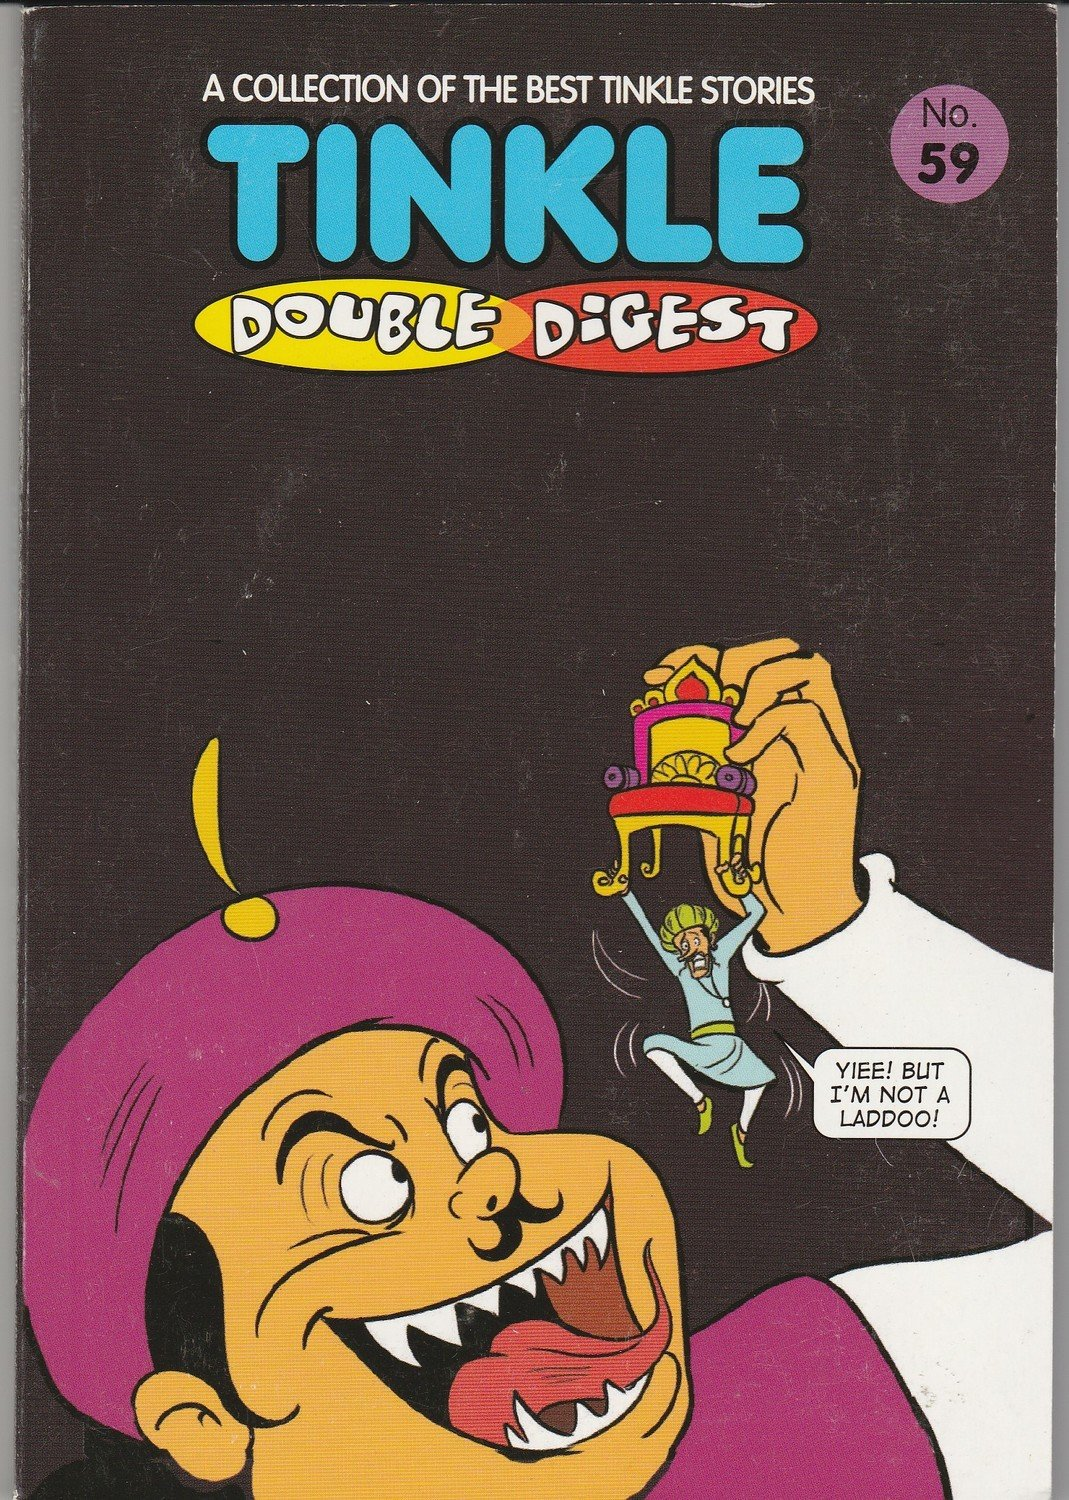 Tinkle Double Digest - No.59